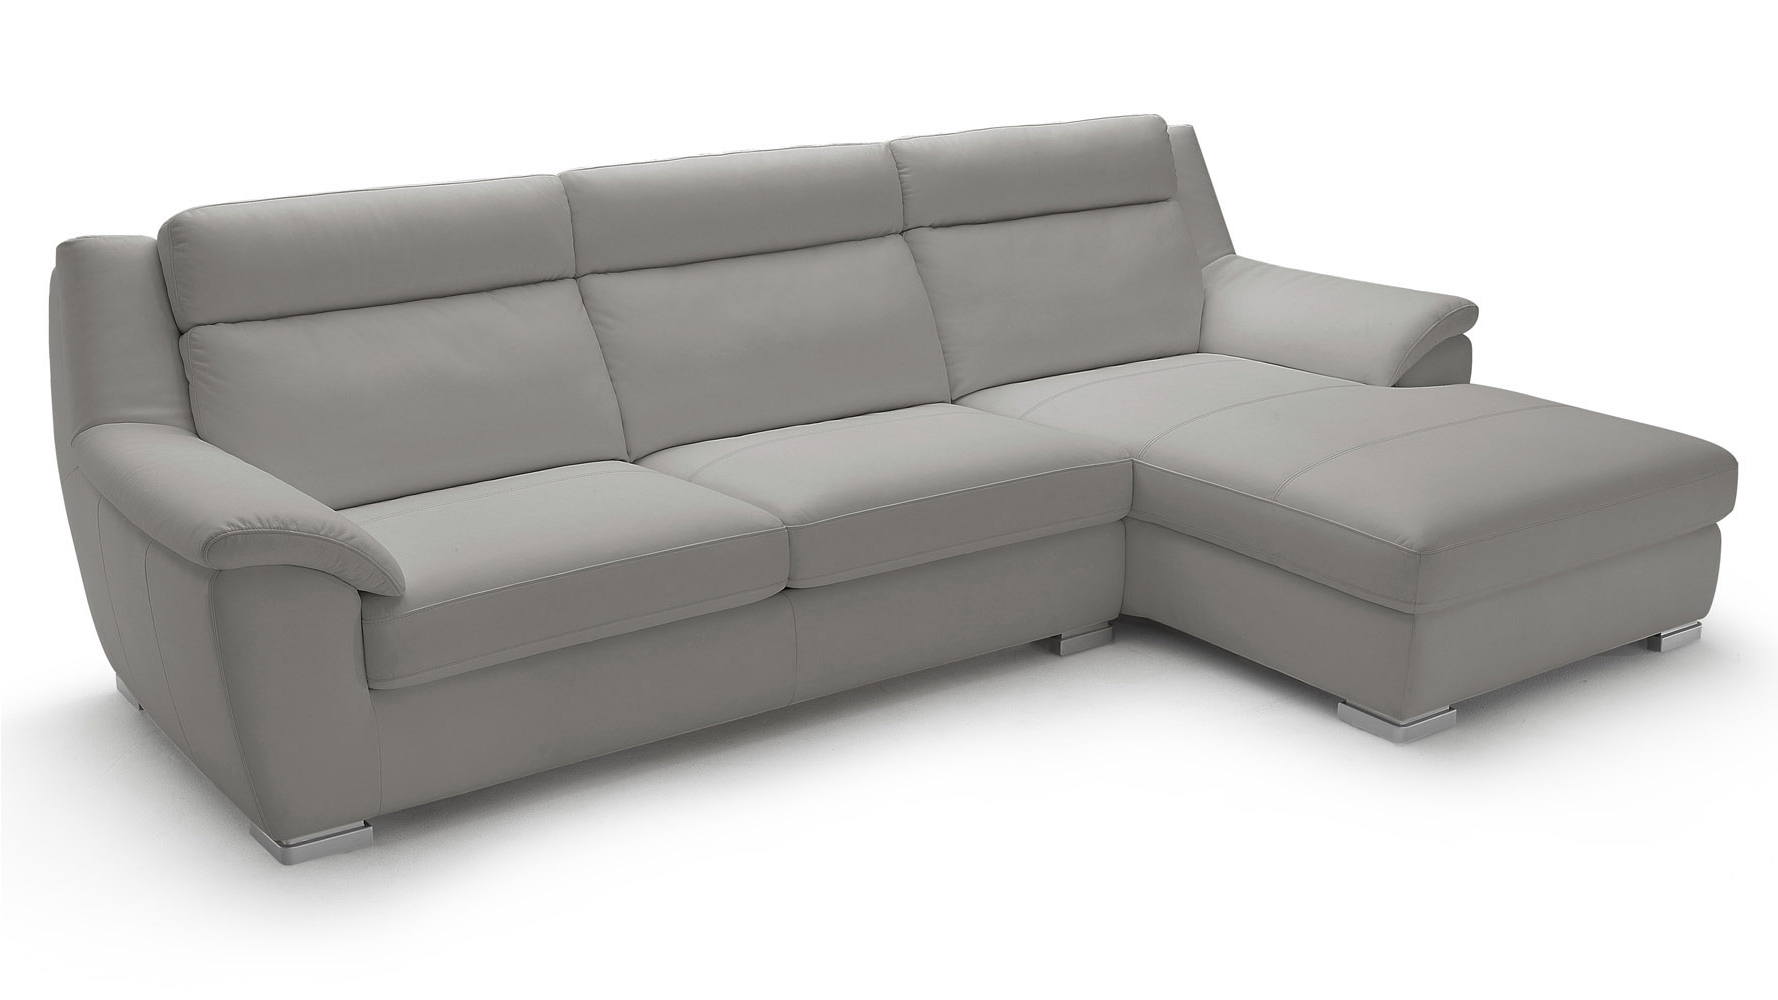 Manor Light Grey Top Grain Leather Sofa Sleeper Sectional With With 2018 Chaise Lounge Sleepers (View 11 of 15)